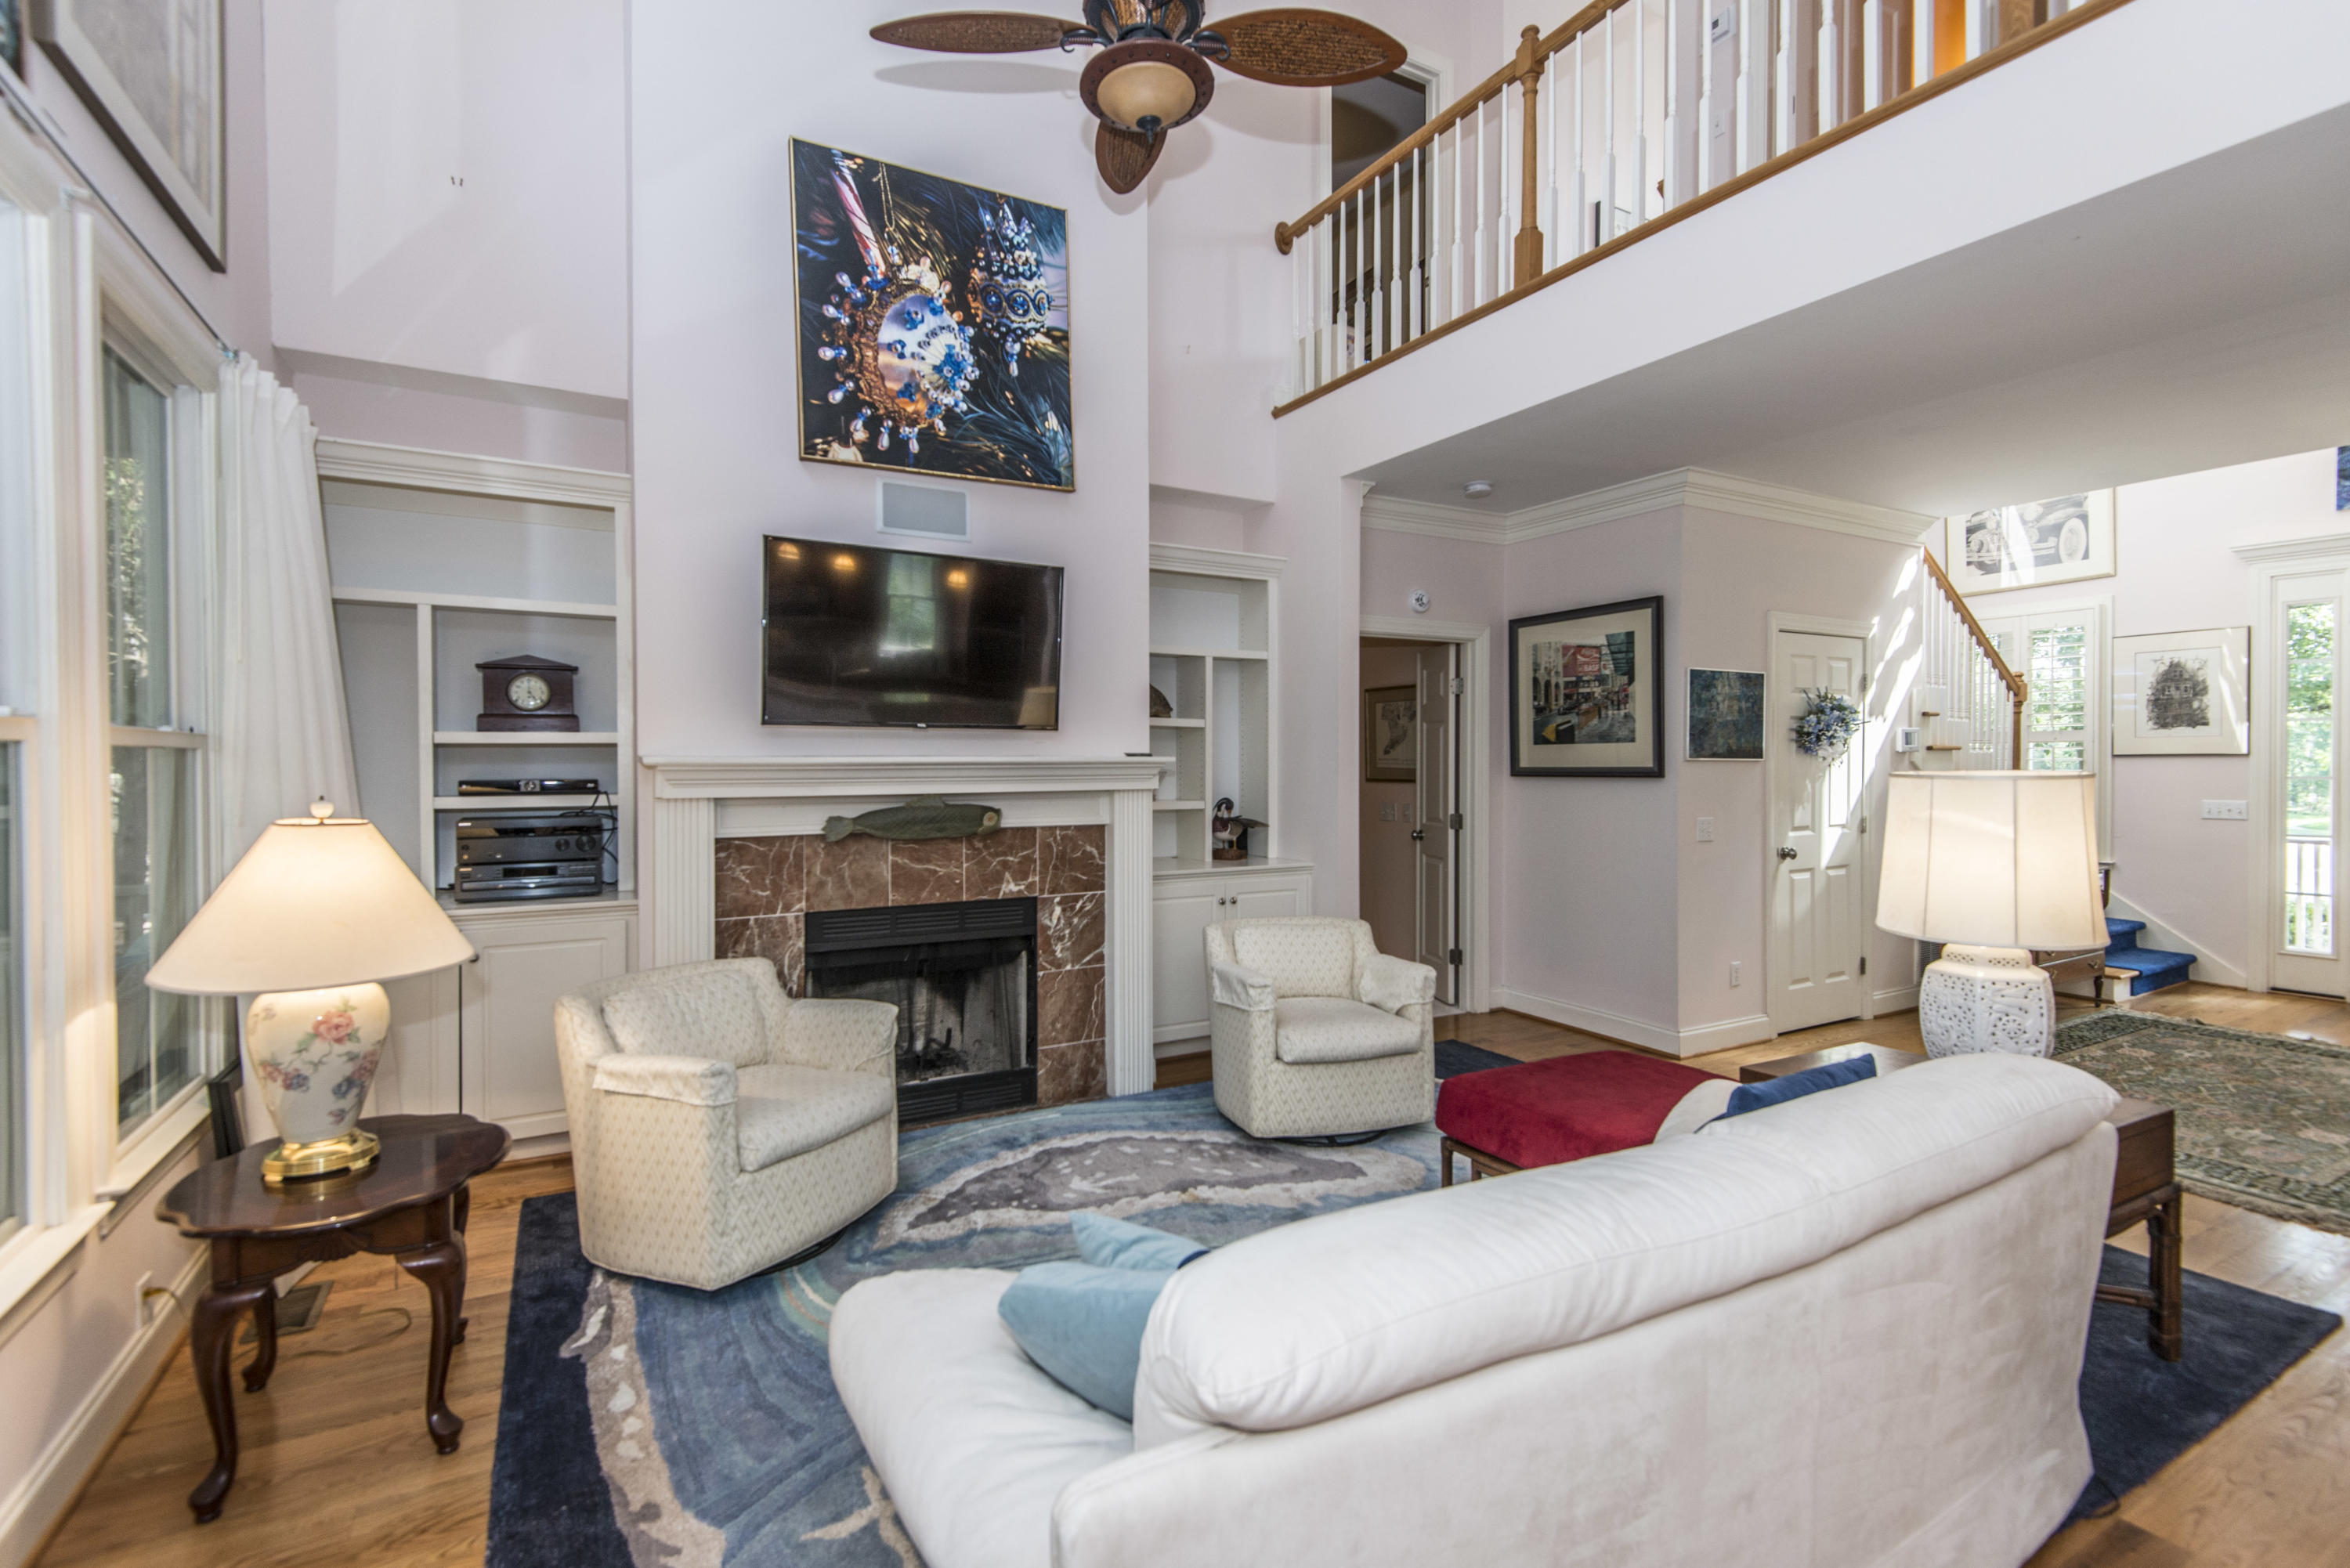 The Villages In St Johns Woods Homes For Sale - 4087 Amy, Johns Island, SC - 18